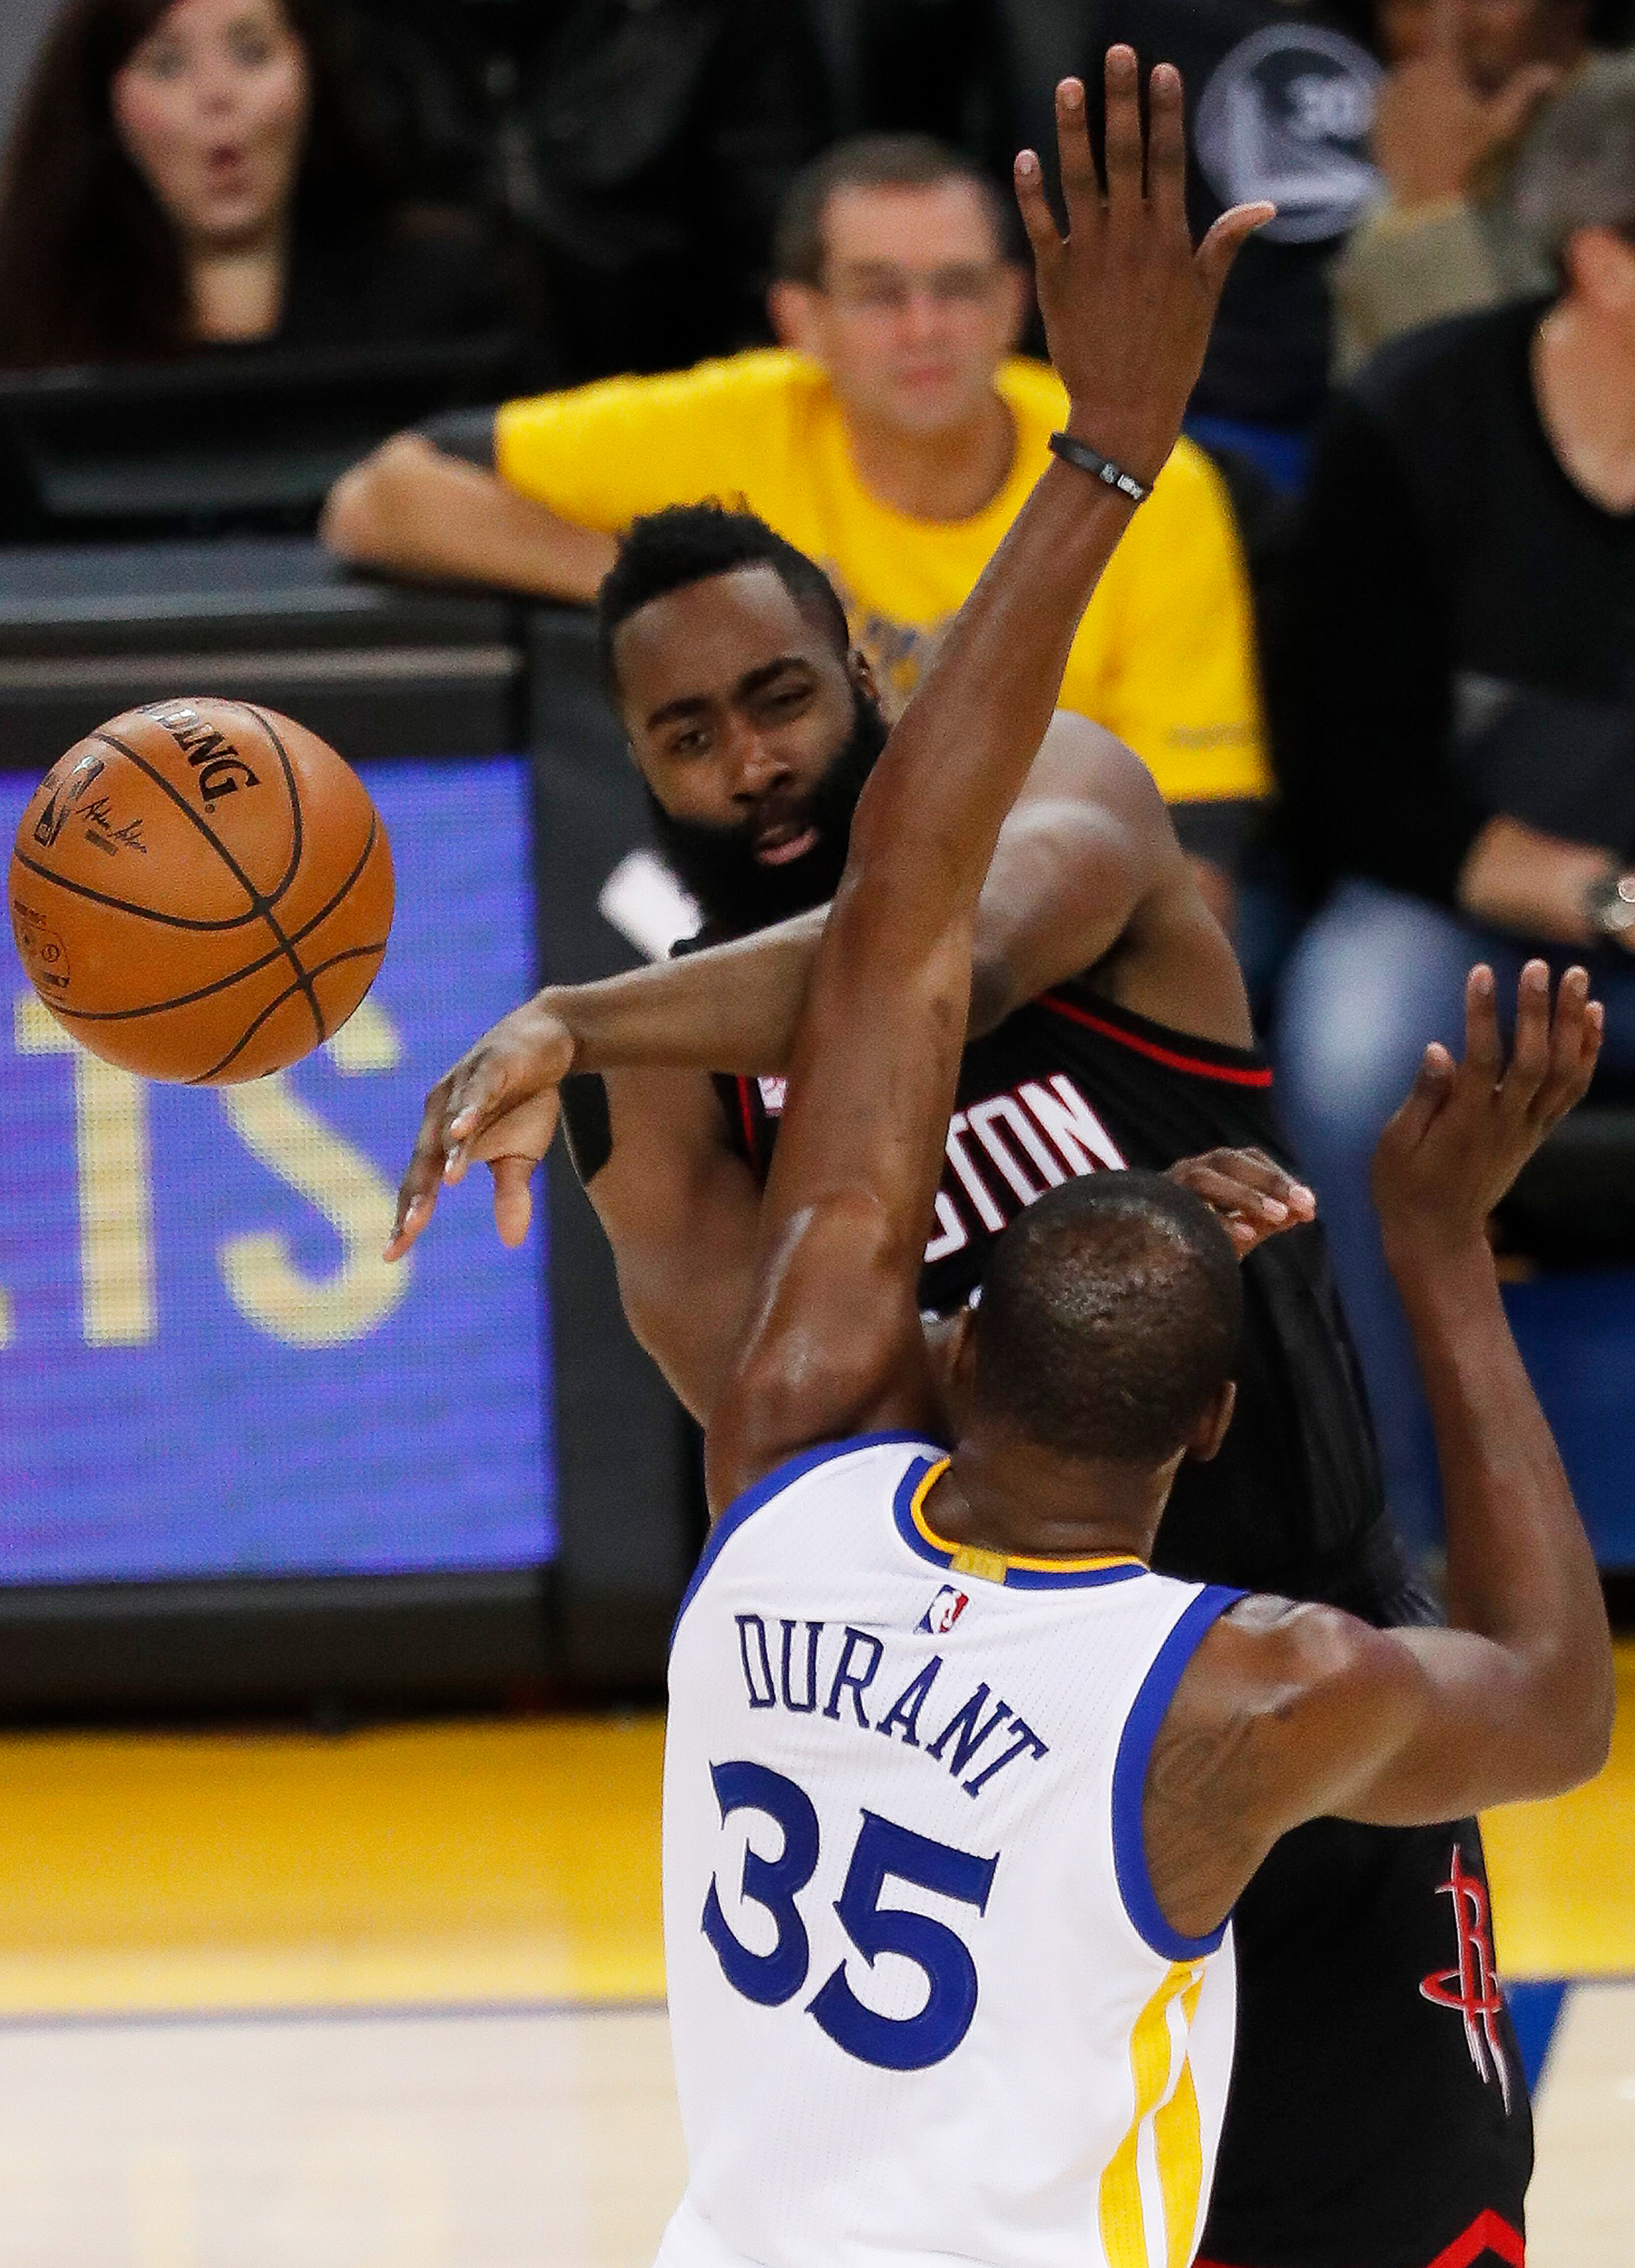 Houston Rockets guard James Harden (top) passes as Golden State Warriors forward Kevin Durant (bottom) defends during the first half of the NBA basketball game between the Houston Rockets and the Golden State Warriors at the Oracle Arena in Oakland, California, December 1, 2016.